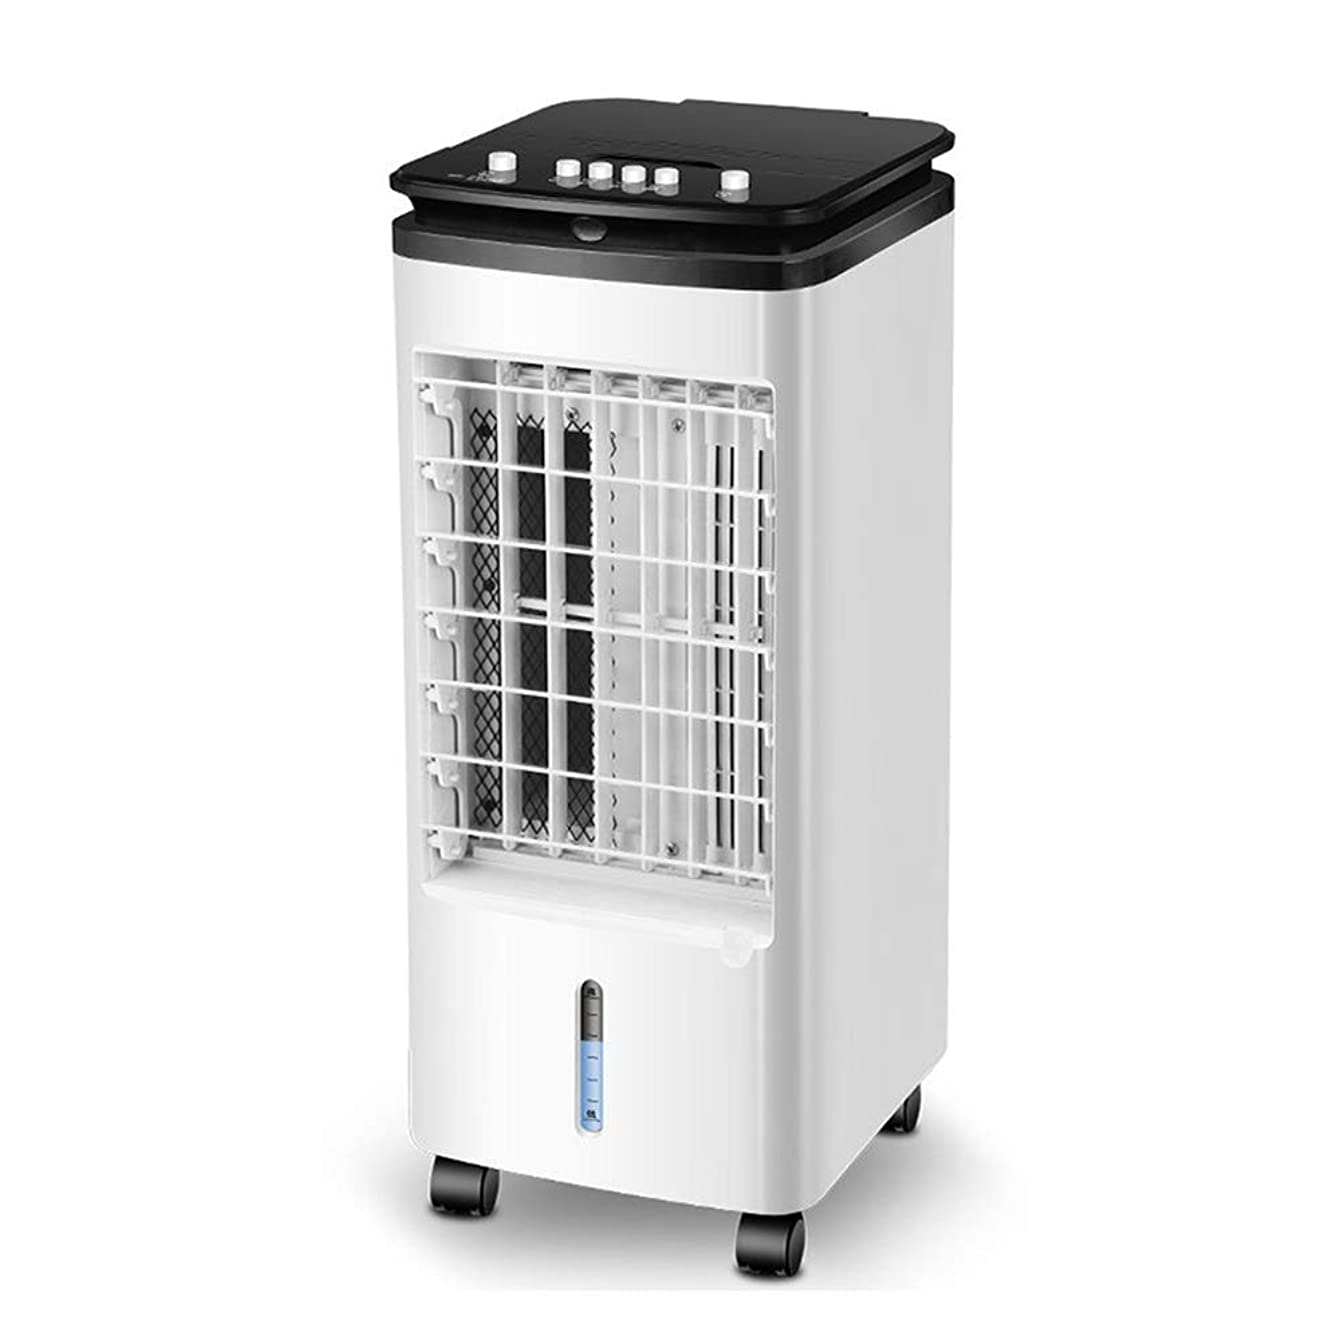 Portable air Conditioner with dehumidifier, evaporative Cooler, Mobile air Conditioner, Water-Cooled air Conditioner, Home - 70W